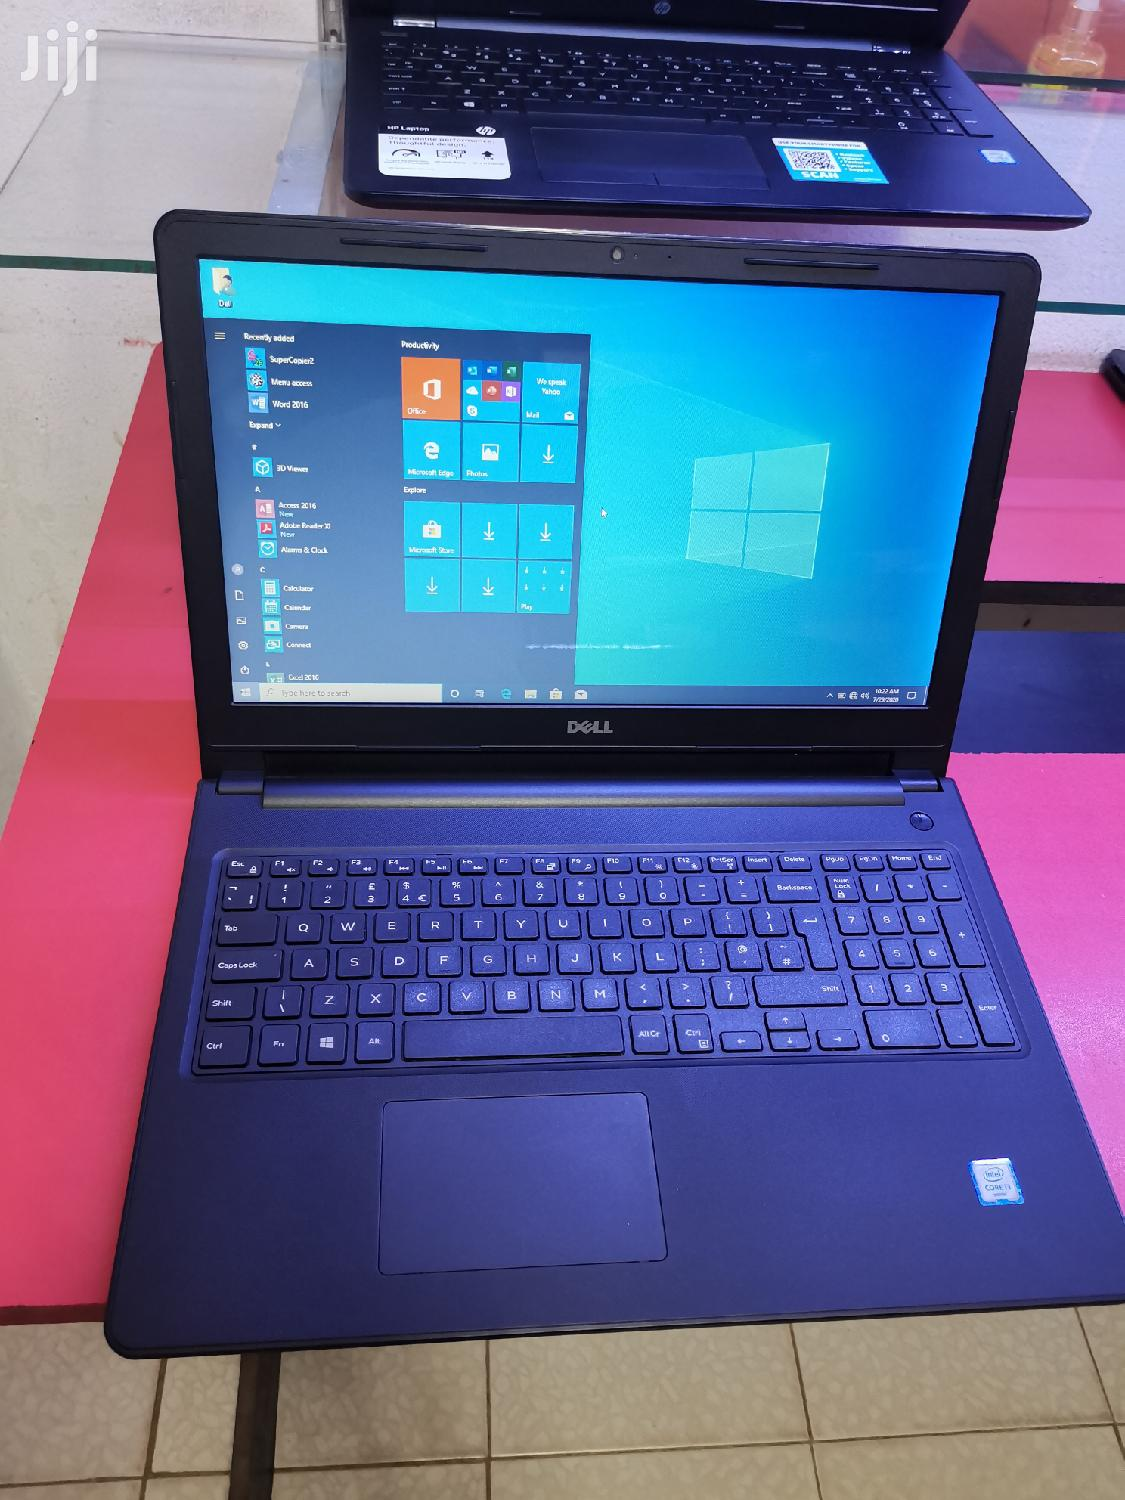 New Laptop Dell Inspiron 15 3567 4GB Intel Core I3 HDD 500GB | Laptops & Computers for sale in Kampala, Central Region, Uganda